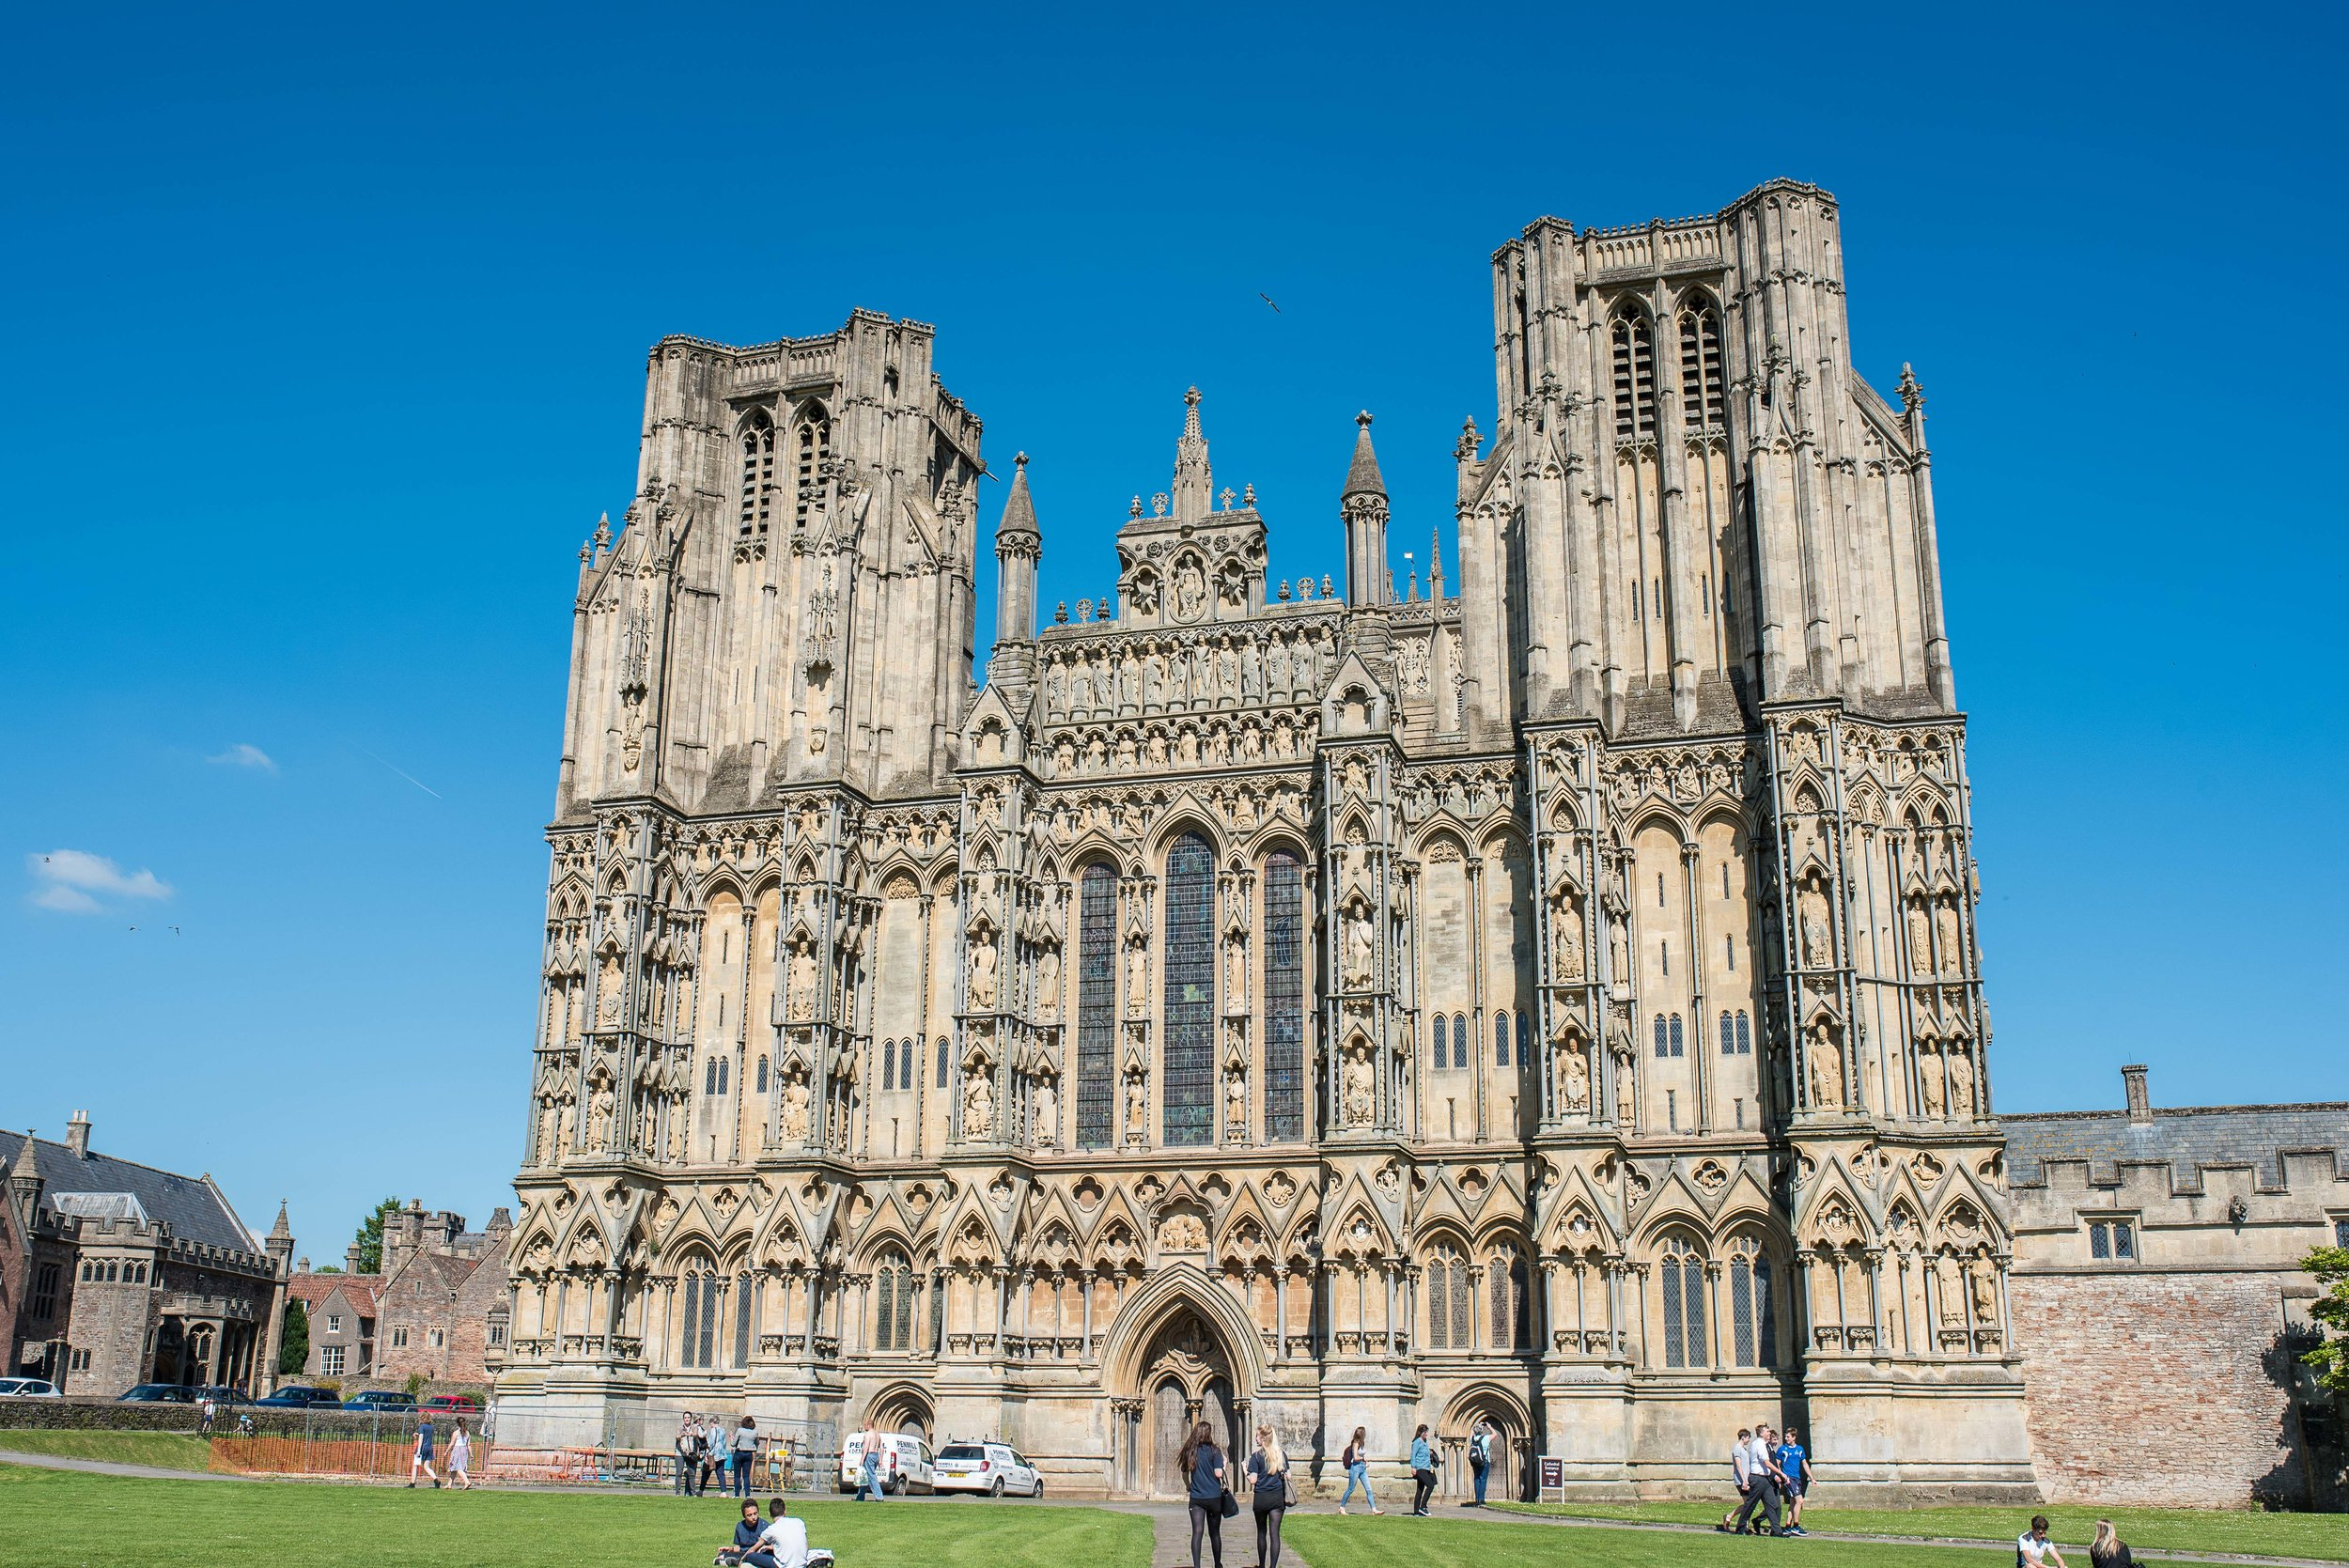 No. 13.5,  Wells Cathedral .  We sort of missed making a dot for Wells, so imagine there's a No. 13.5 just to the Southwest of Bath (No. 14.)